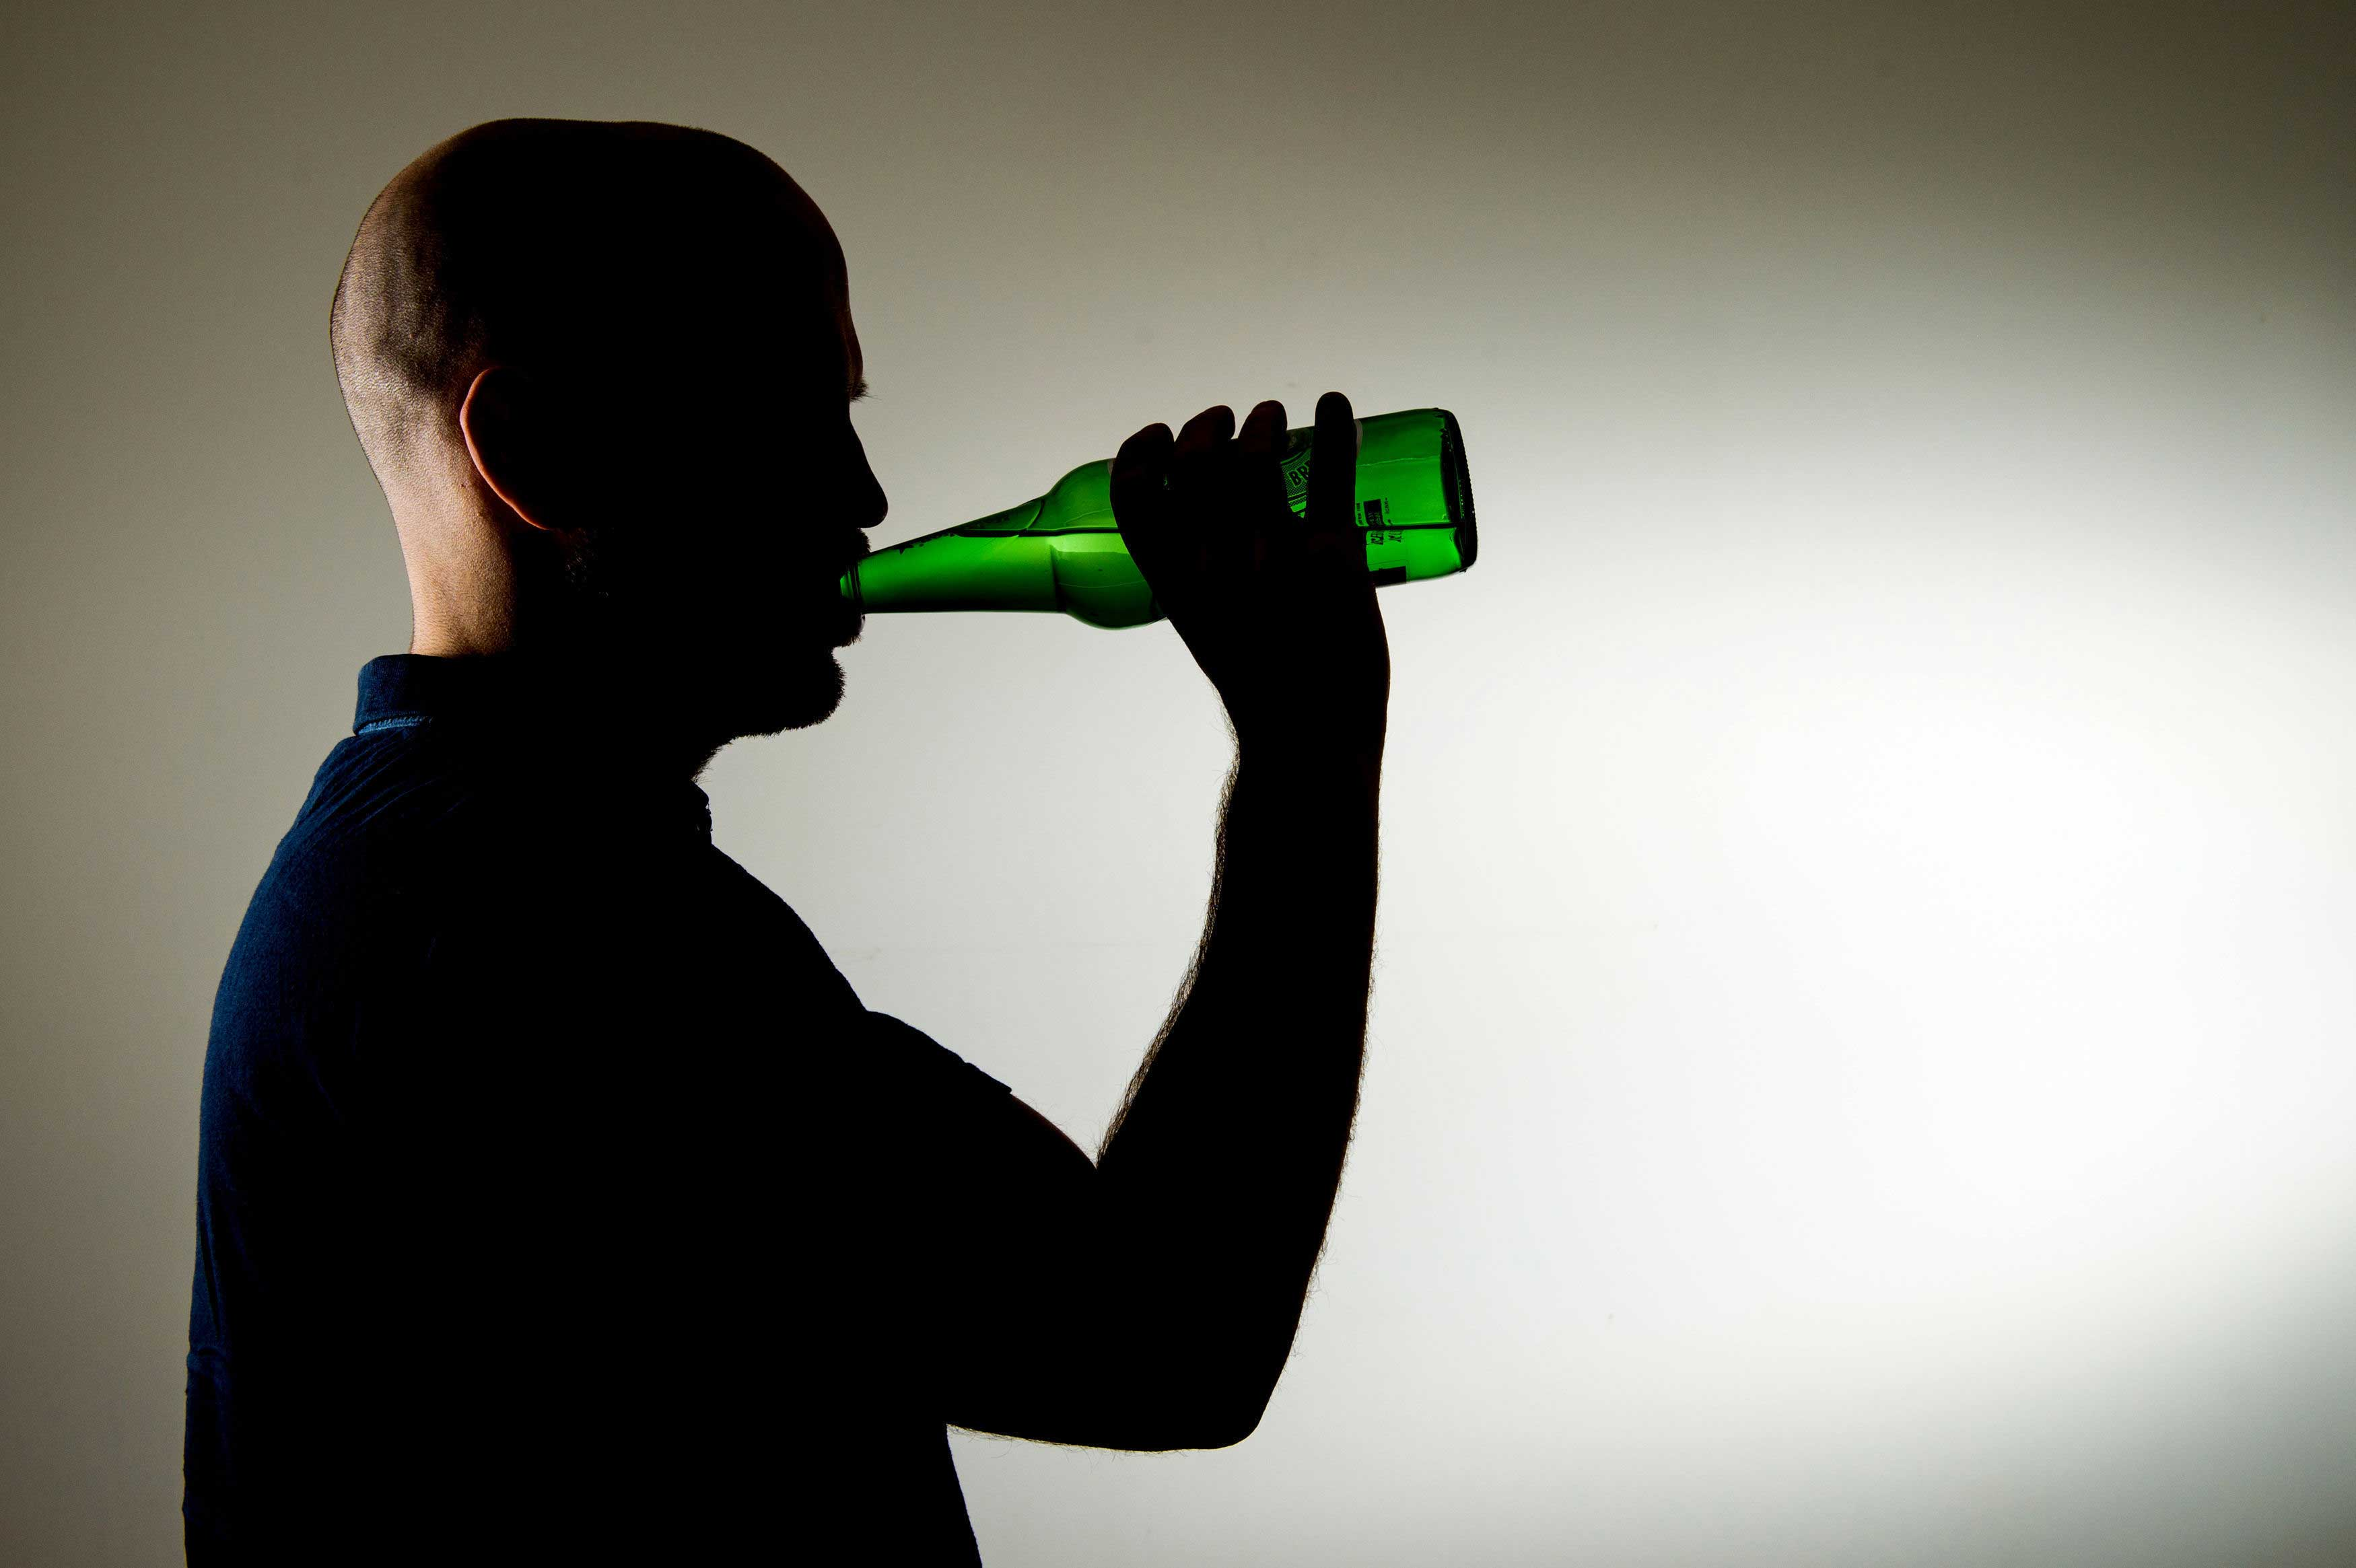 Drinking too much can take years off of your life